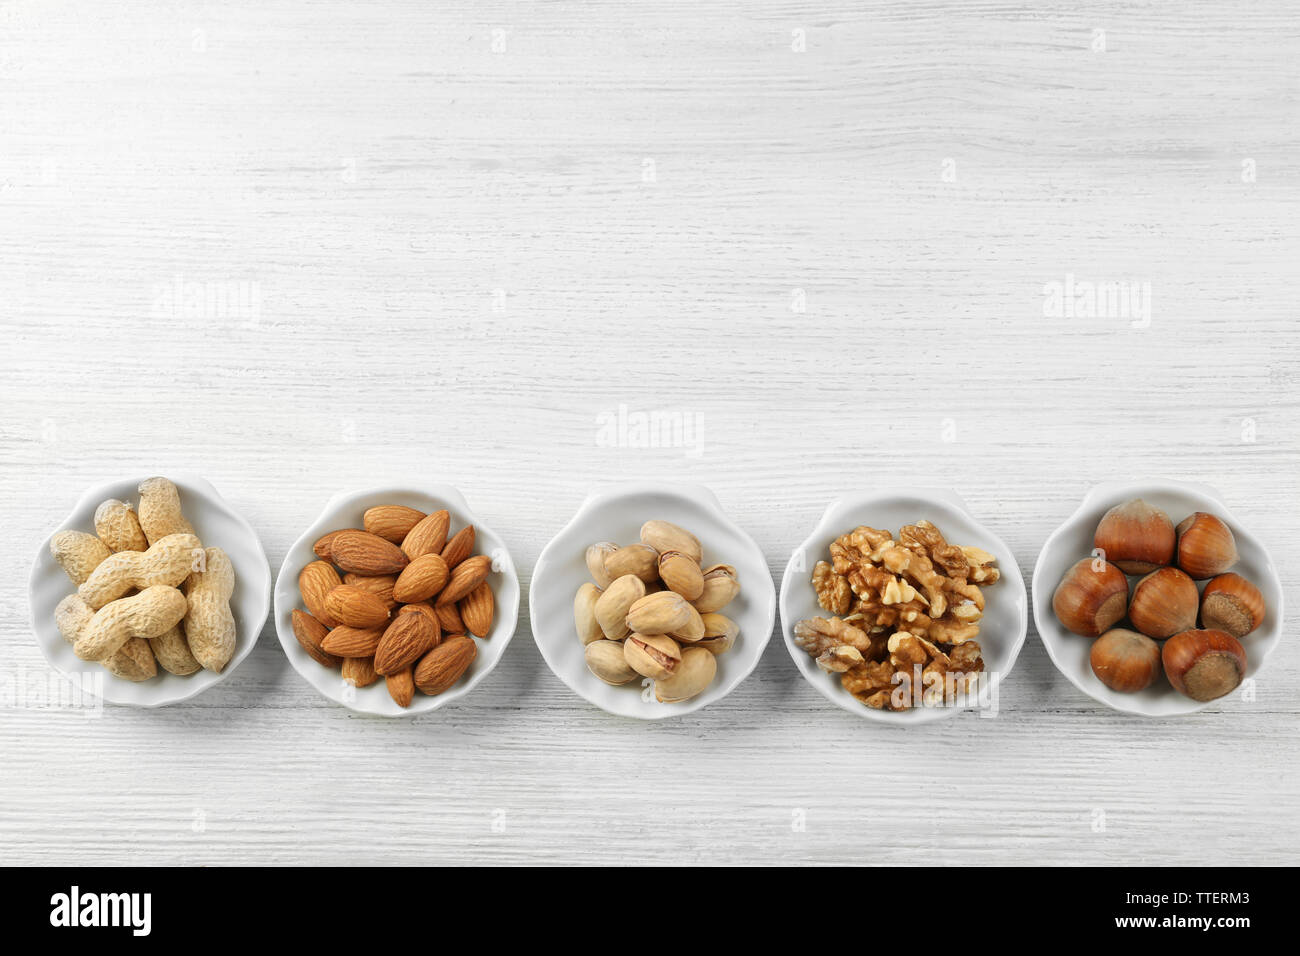 Pistachios, almonds, peanuts, walnut kernels and hazelnuts in the bowls on white wooden table Stock Photo